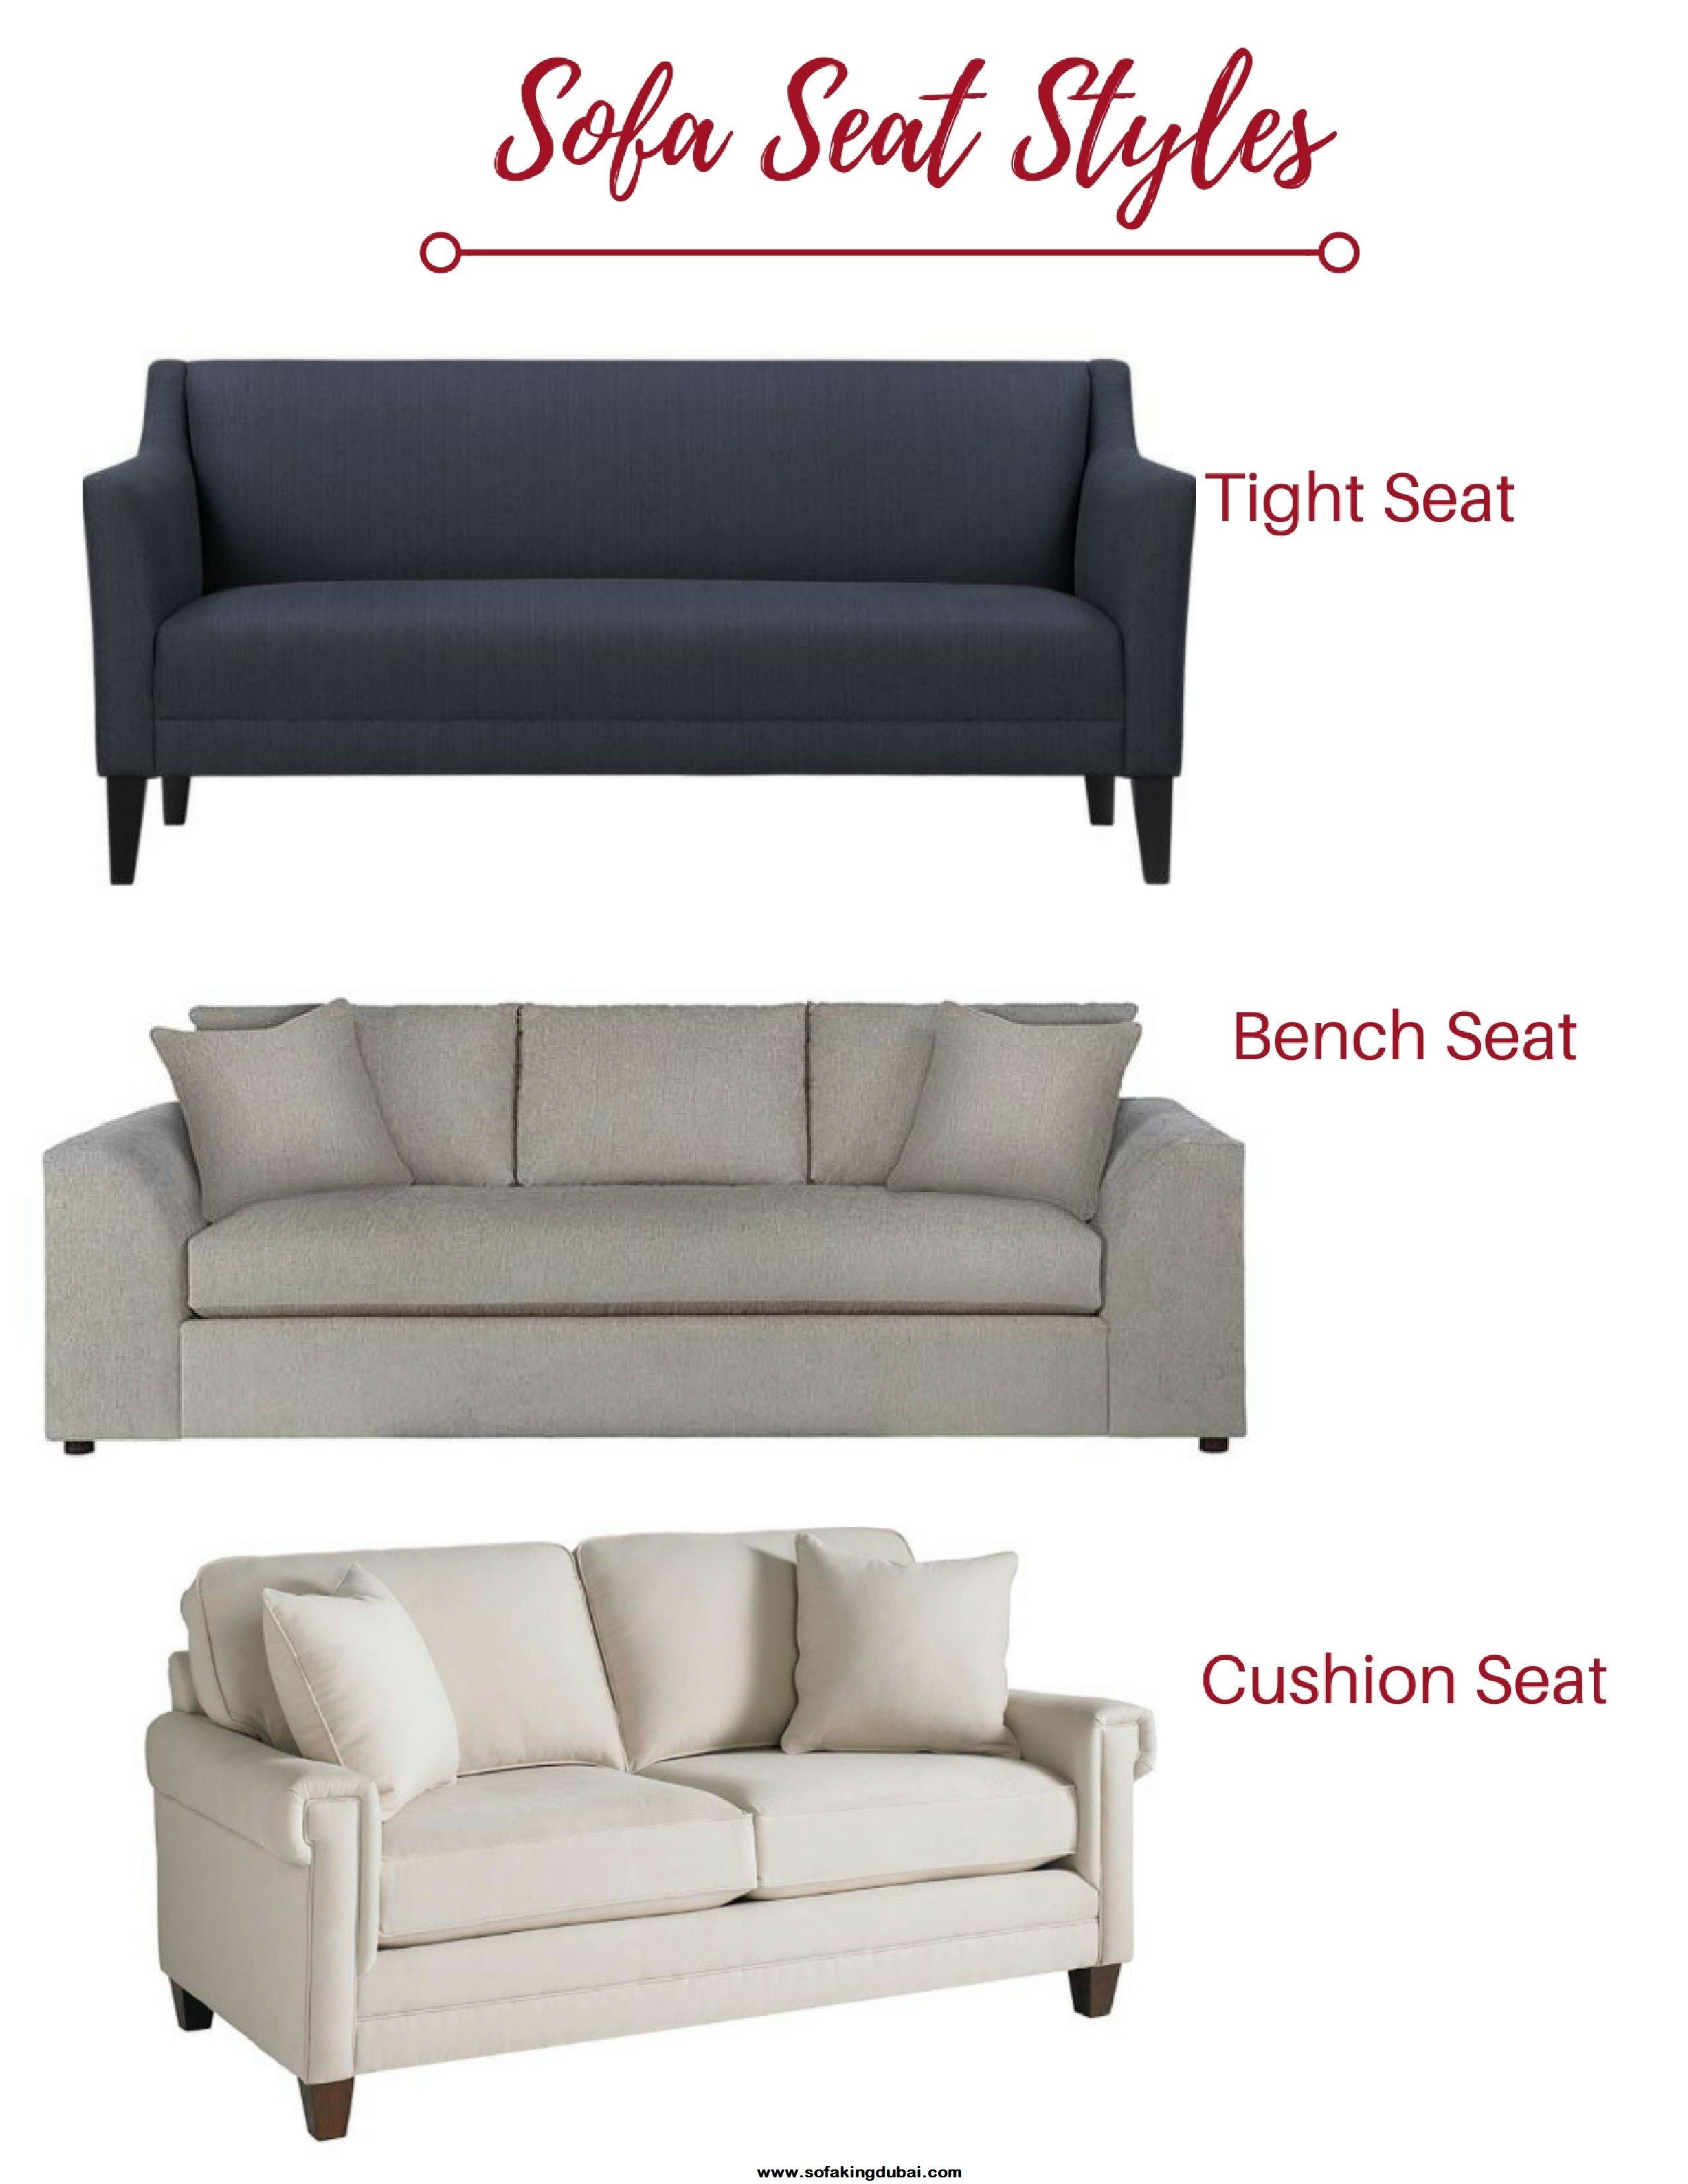 linen sofa textured sure box reviews wayfair cushion loveseat slipcover fit pdp furniture ca single